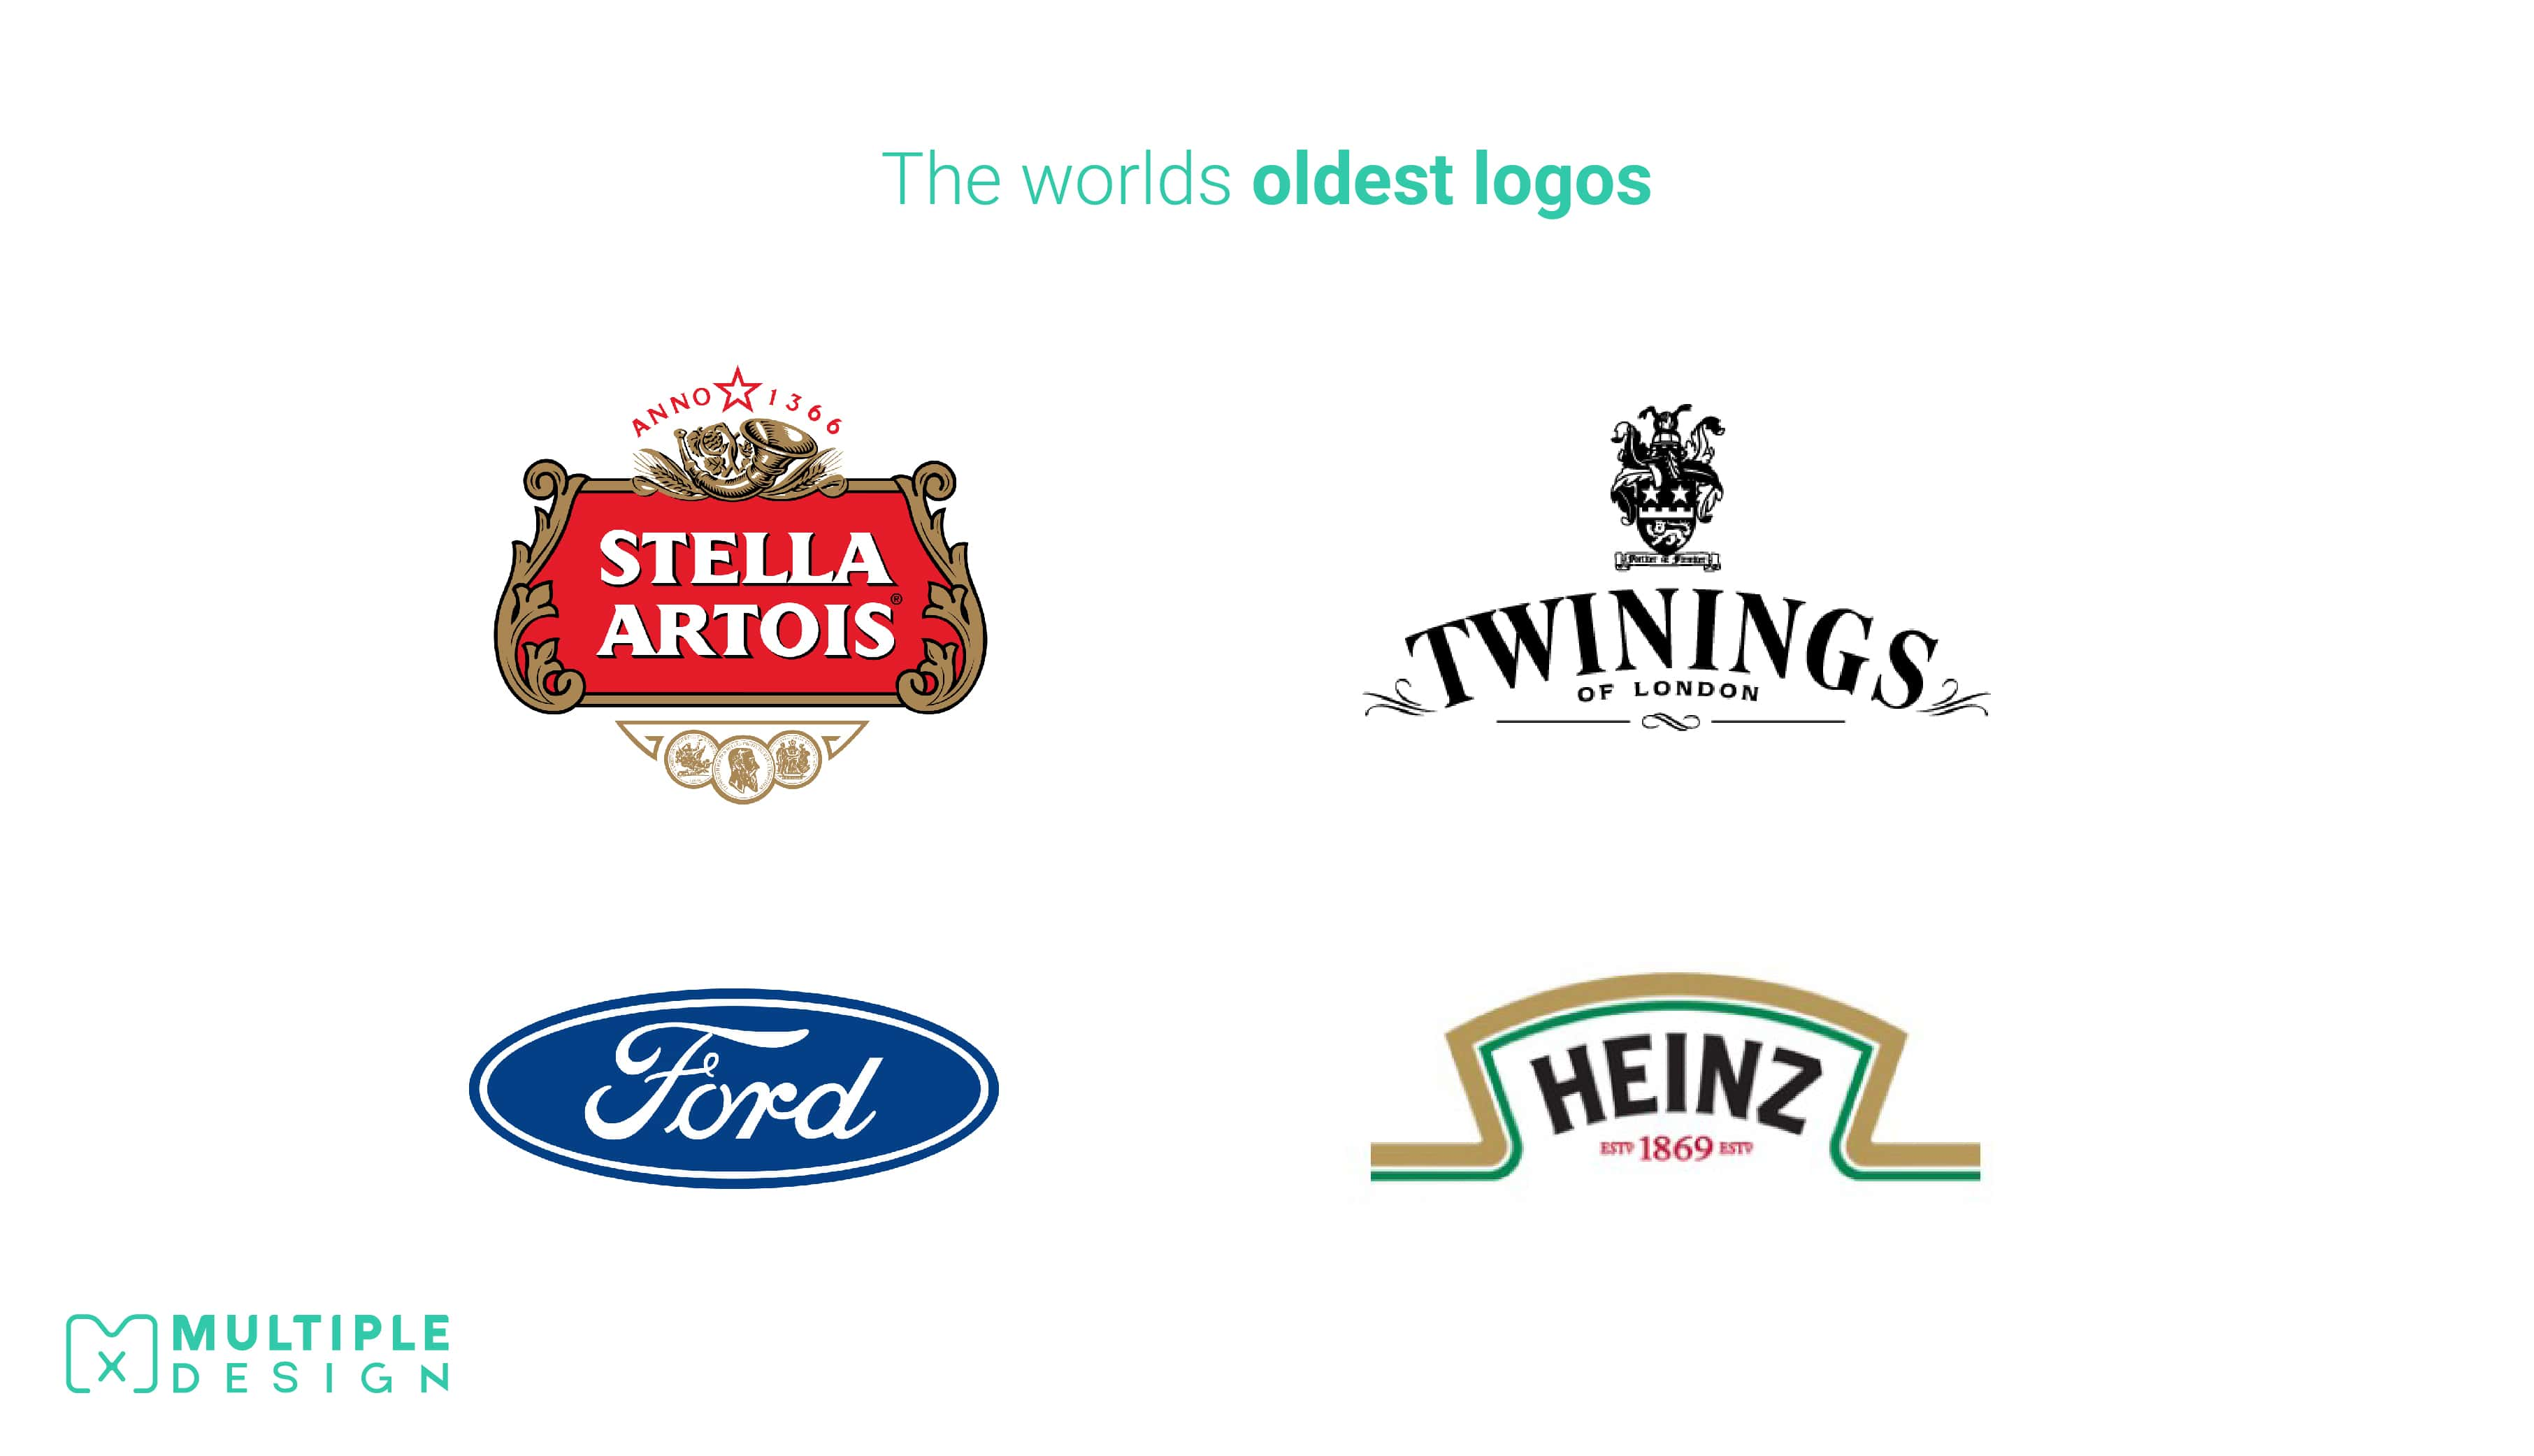 The worlds oldest logos